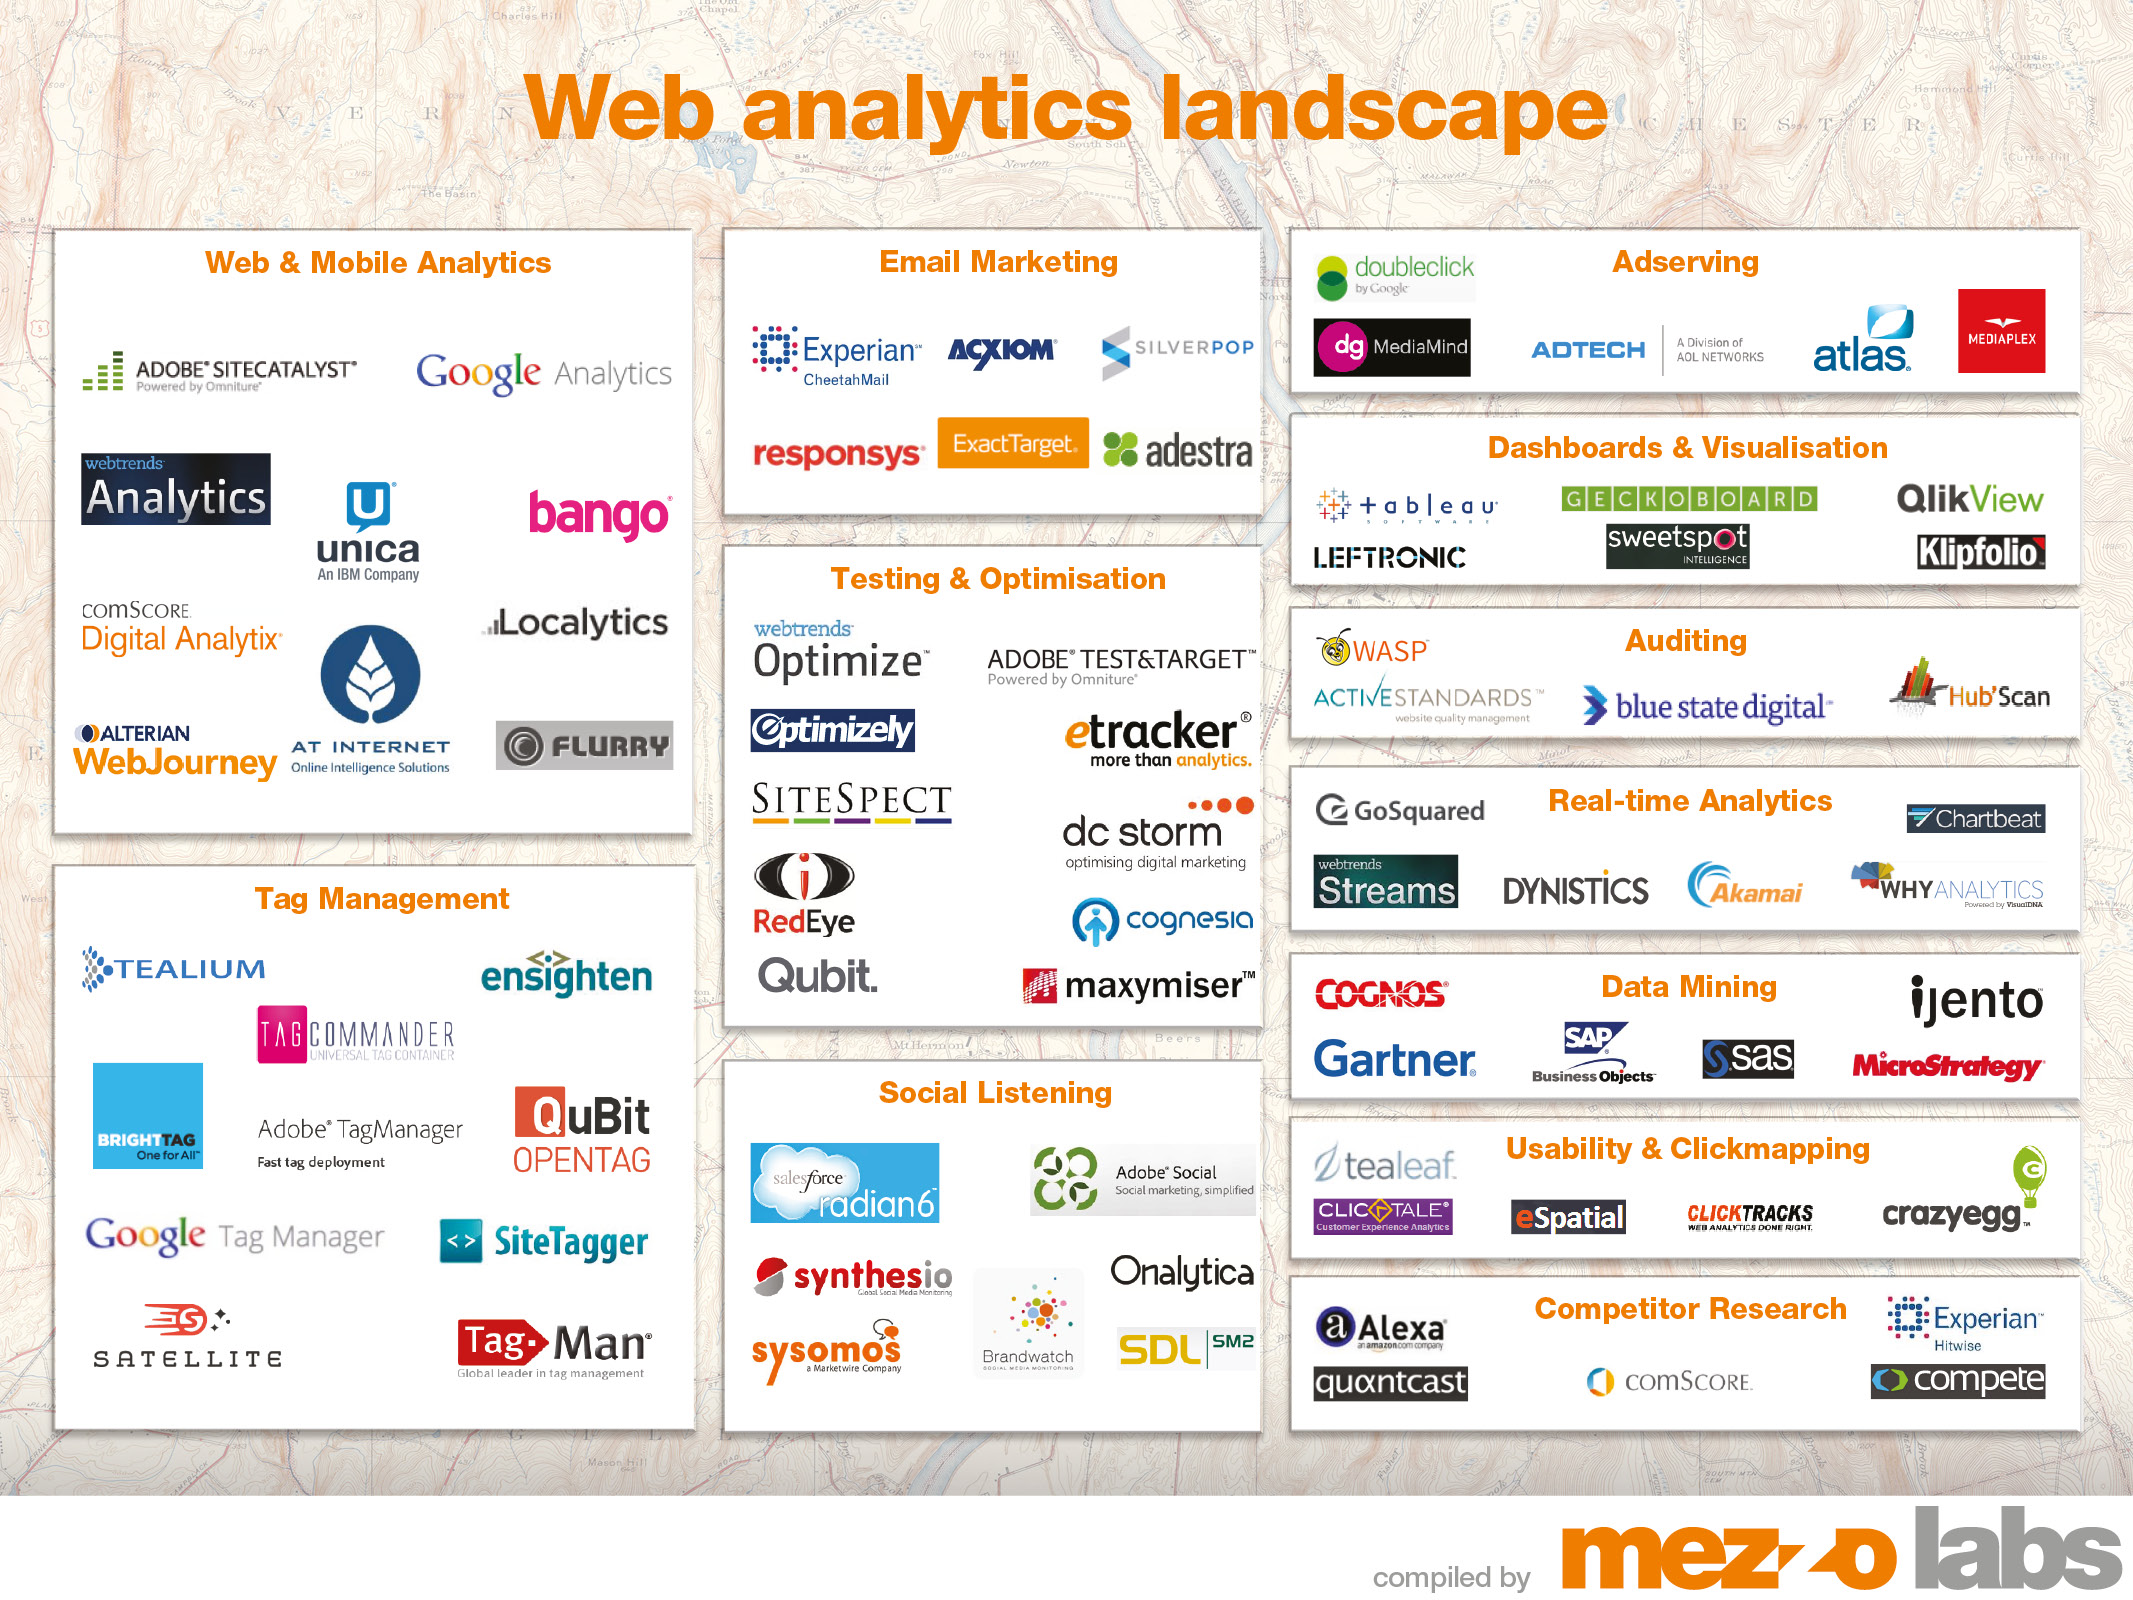 The web analytics landscape